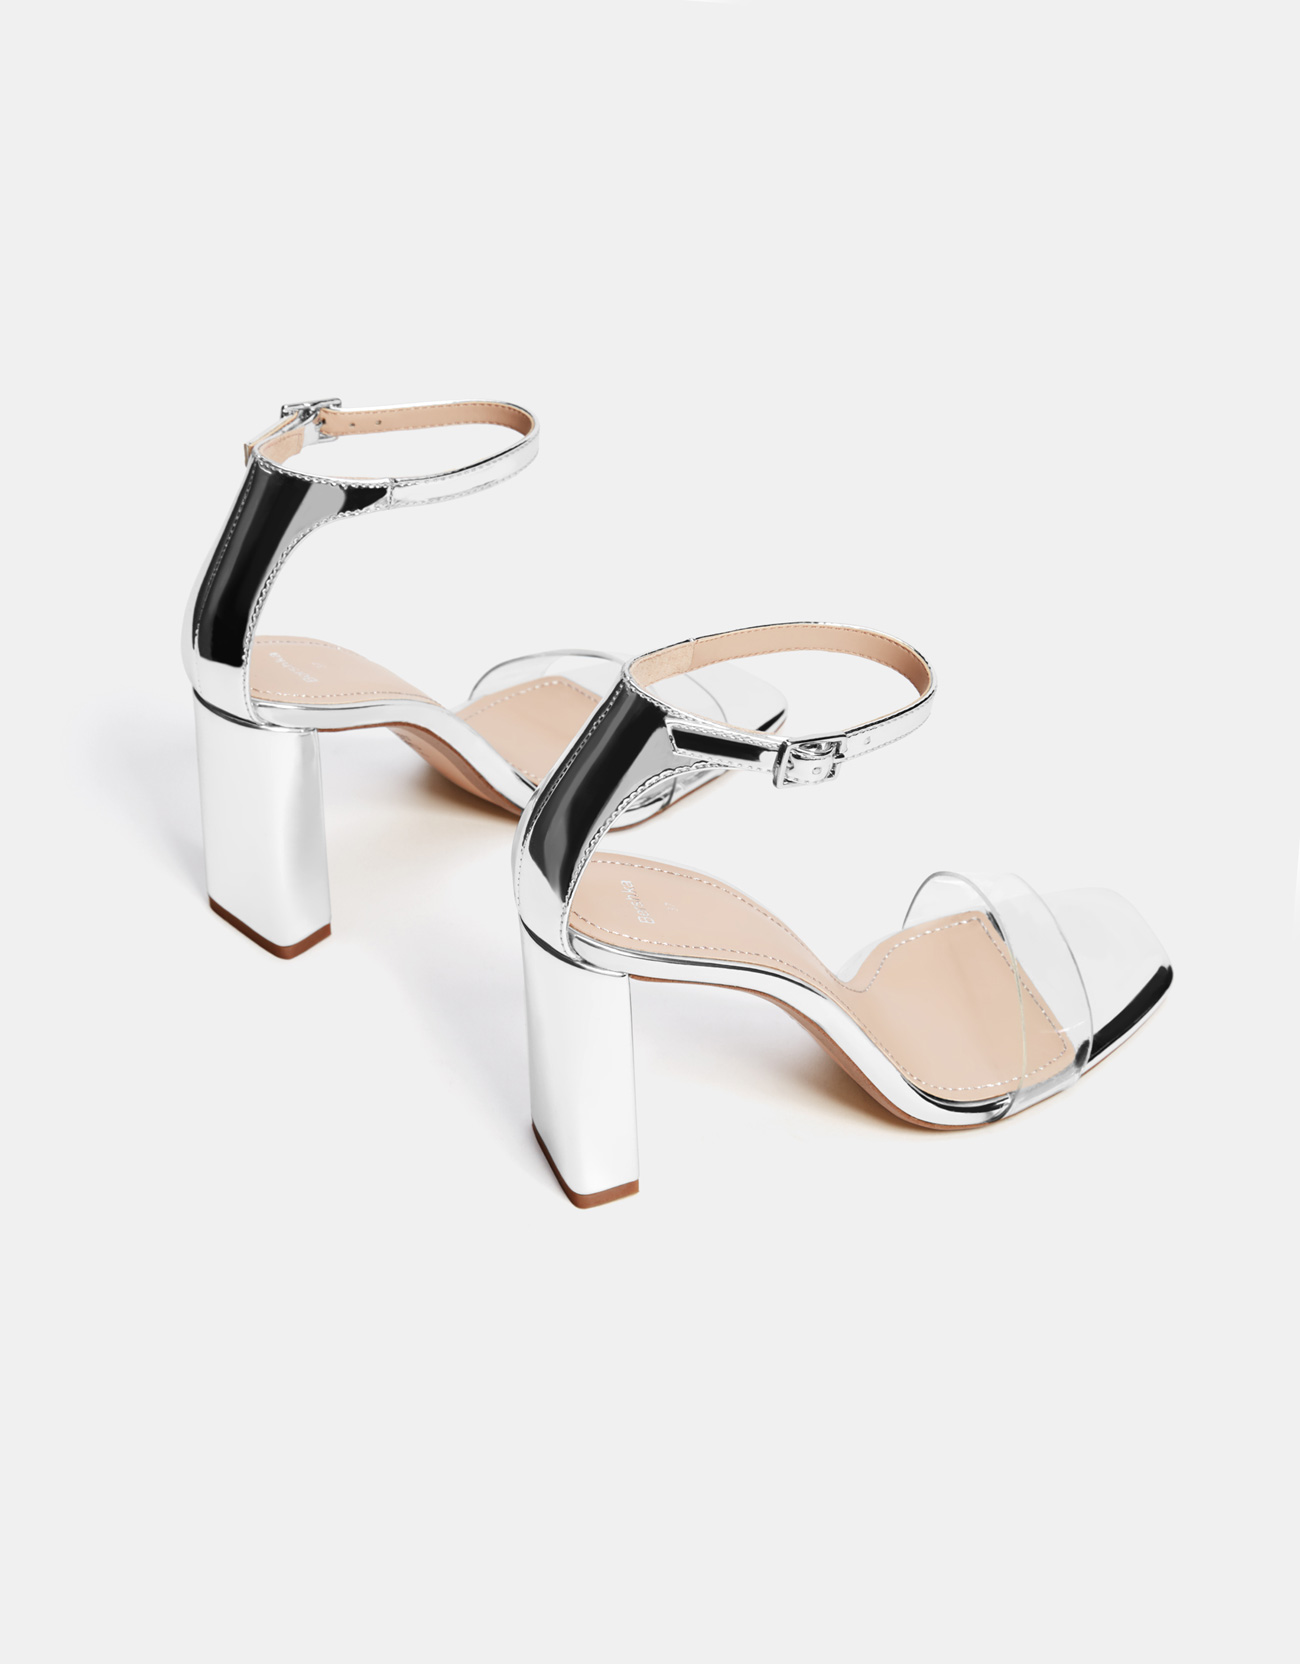 3aa8e7494f0 Metallic high-heel sandals with vinyl strap - Heeled Sandals ...